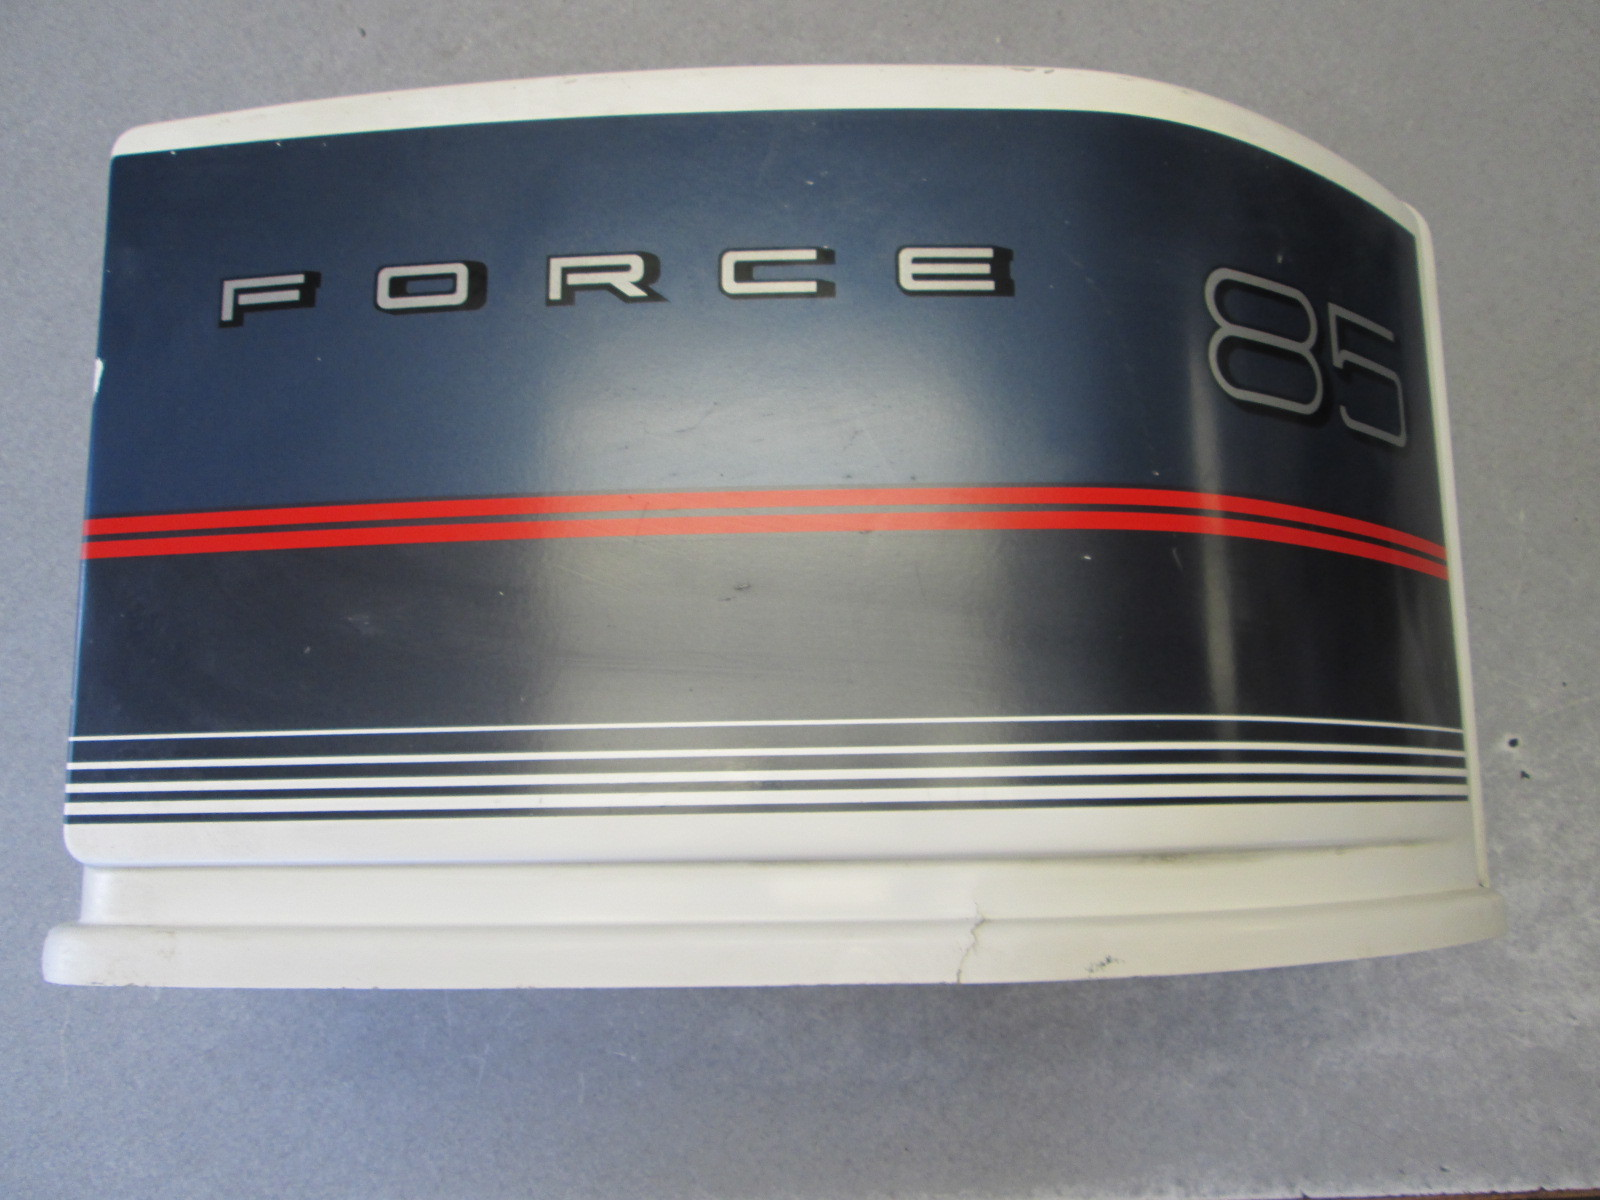 1986 Force Outboard 85 Hp 3 Cyl Engine Cowling Motor Cover Top Cowl Hood Cap